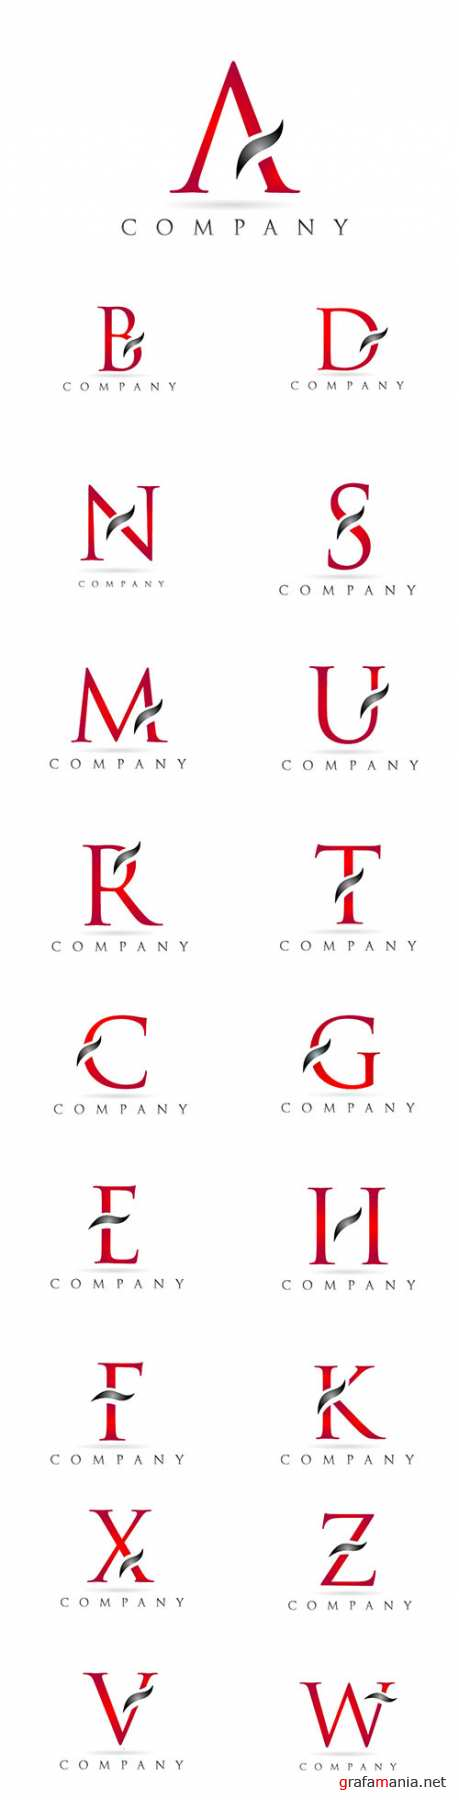 White red alphabet letter logo company icon design